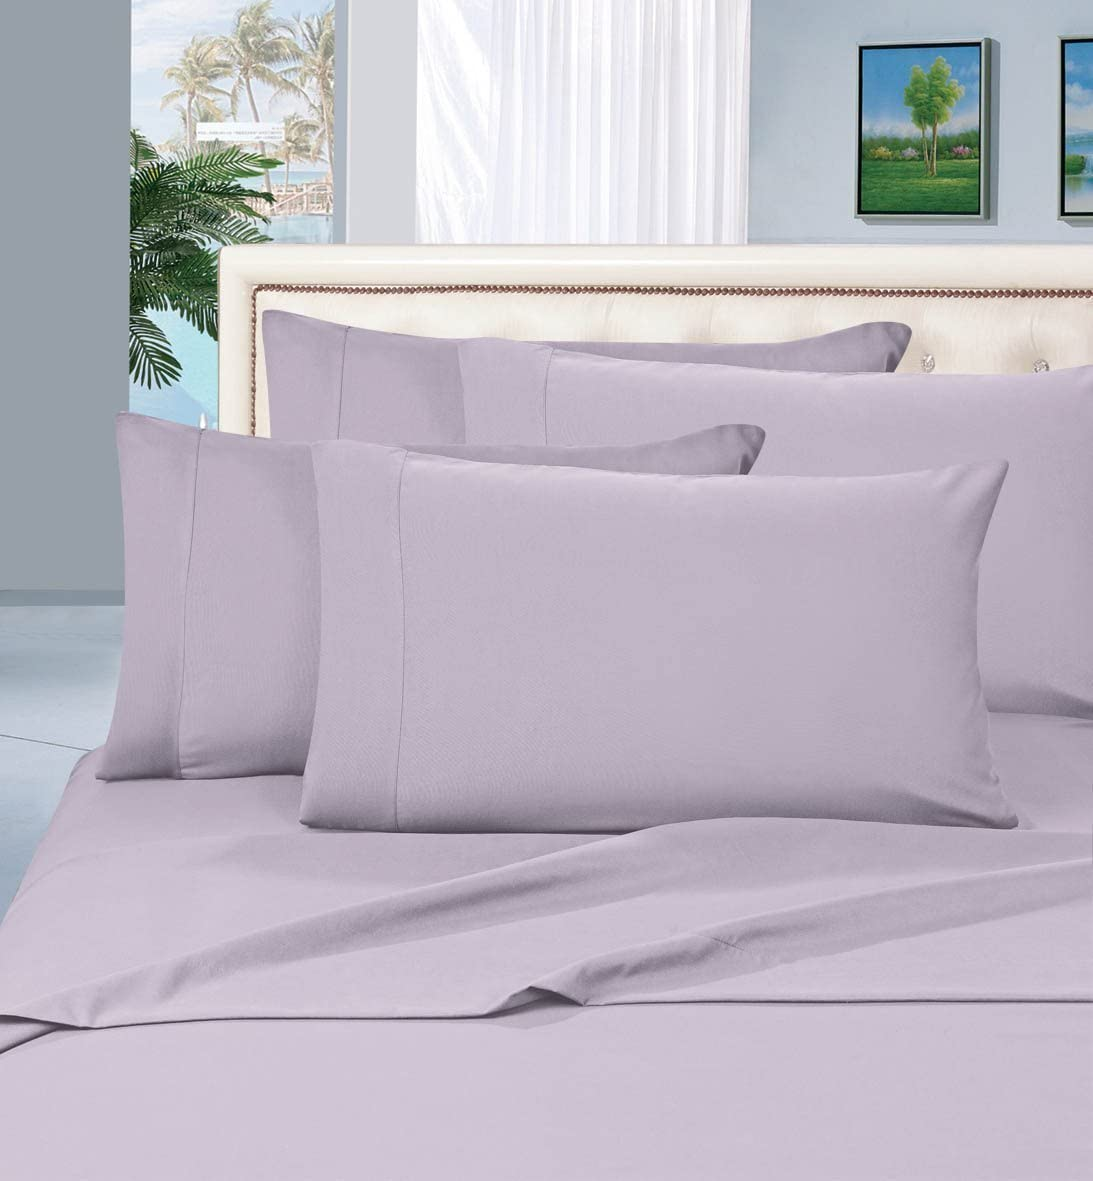 Luxurious Bed Sheets Set on Amazon! Elegant Comfort1500 Thread Count Wrinkle,Fade and Stain Resistant 4-Piece Bed Sheet Set, Deep Pocket, Hypoallergenic - Queen Lilac